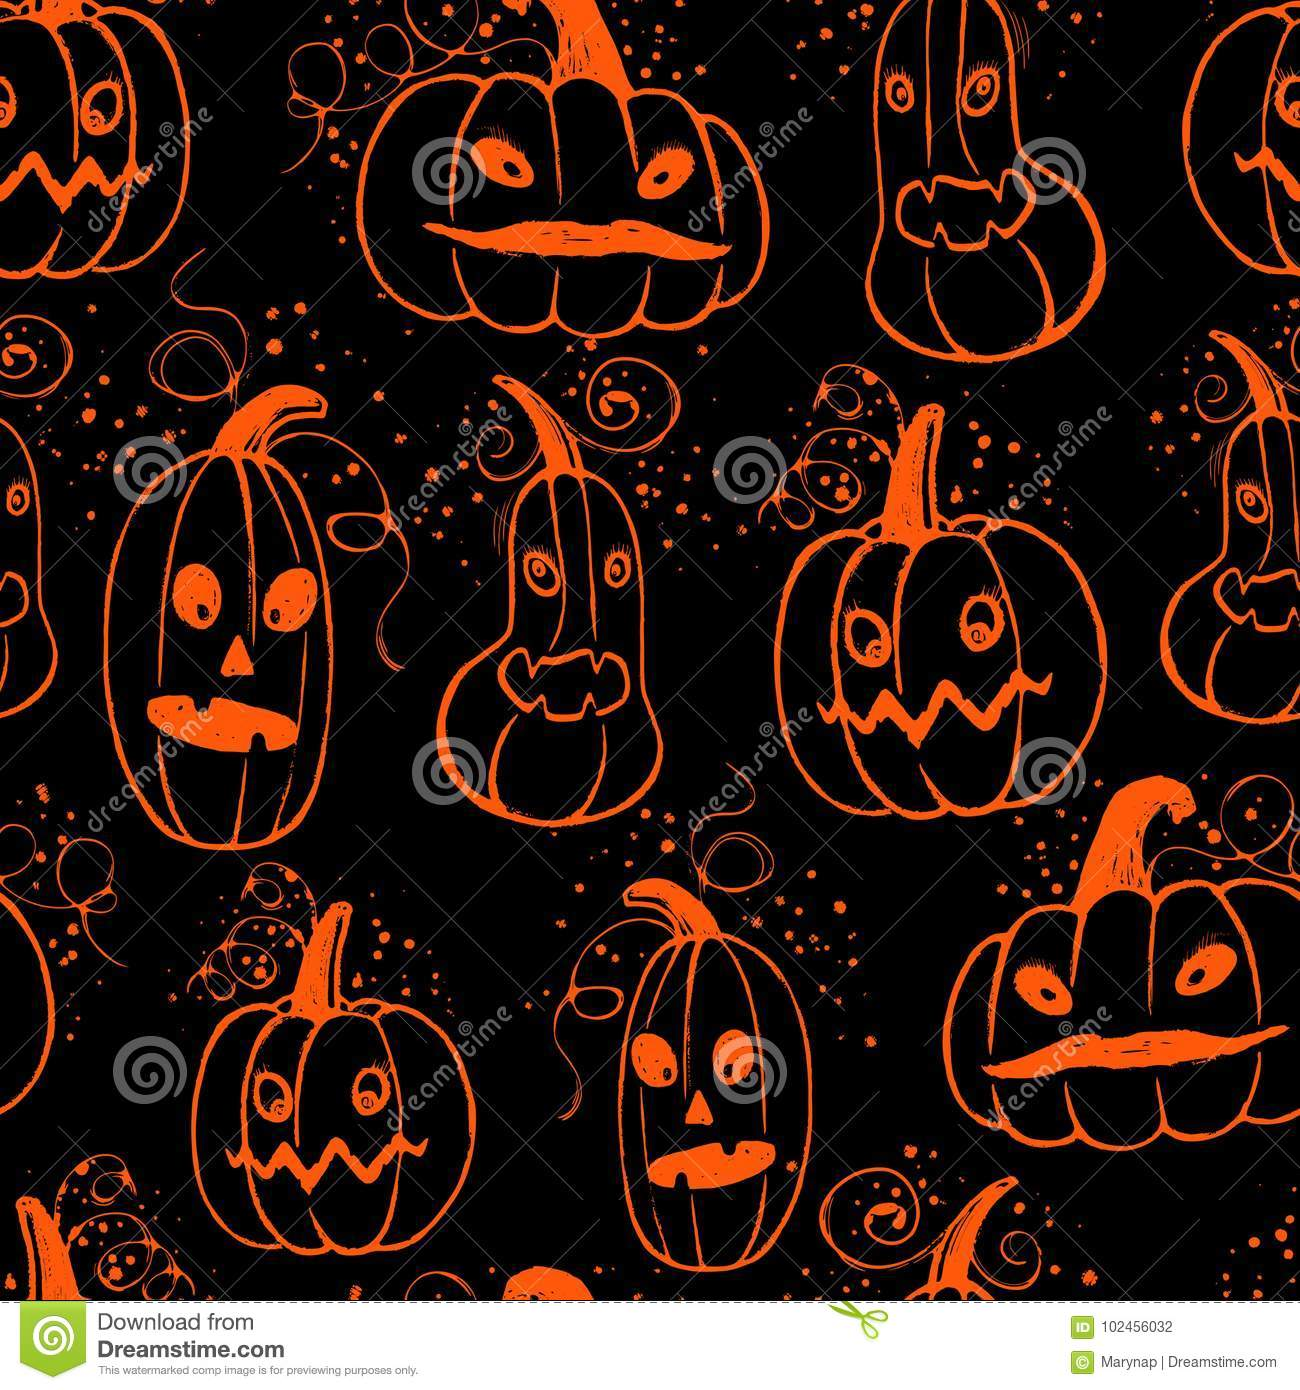 Ink hand drawn halloween pattern with pumpkin characters